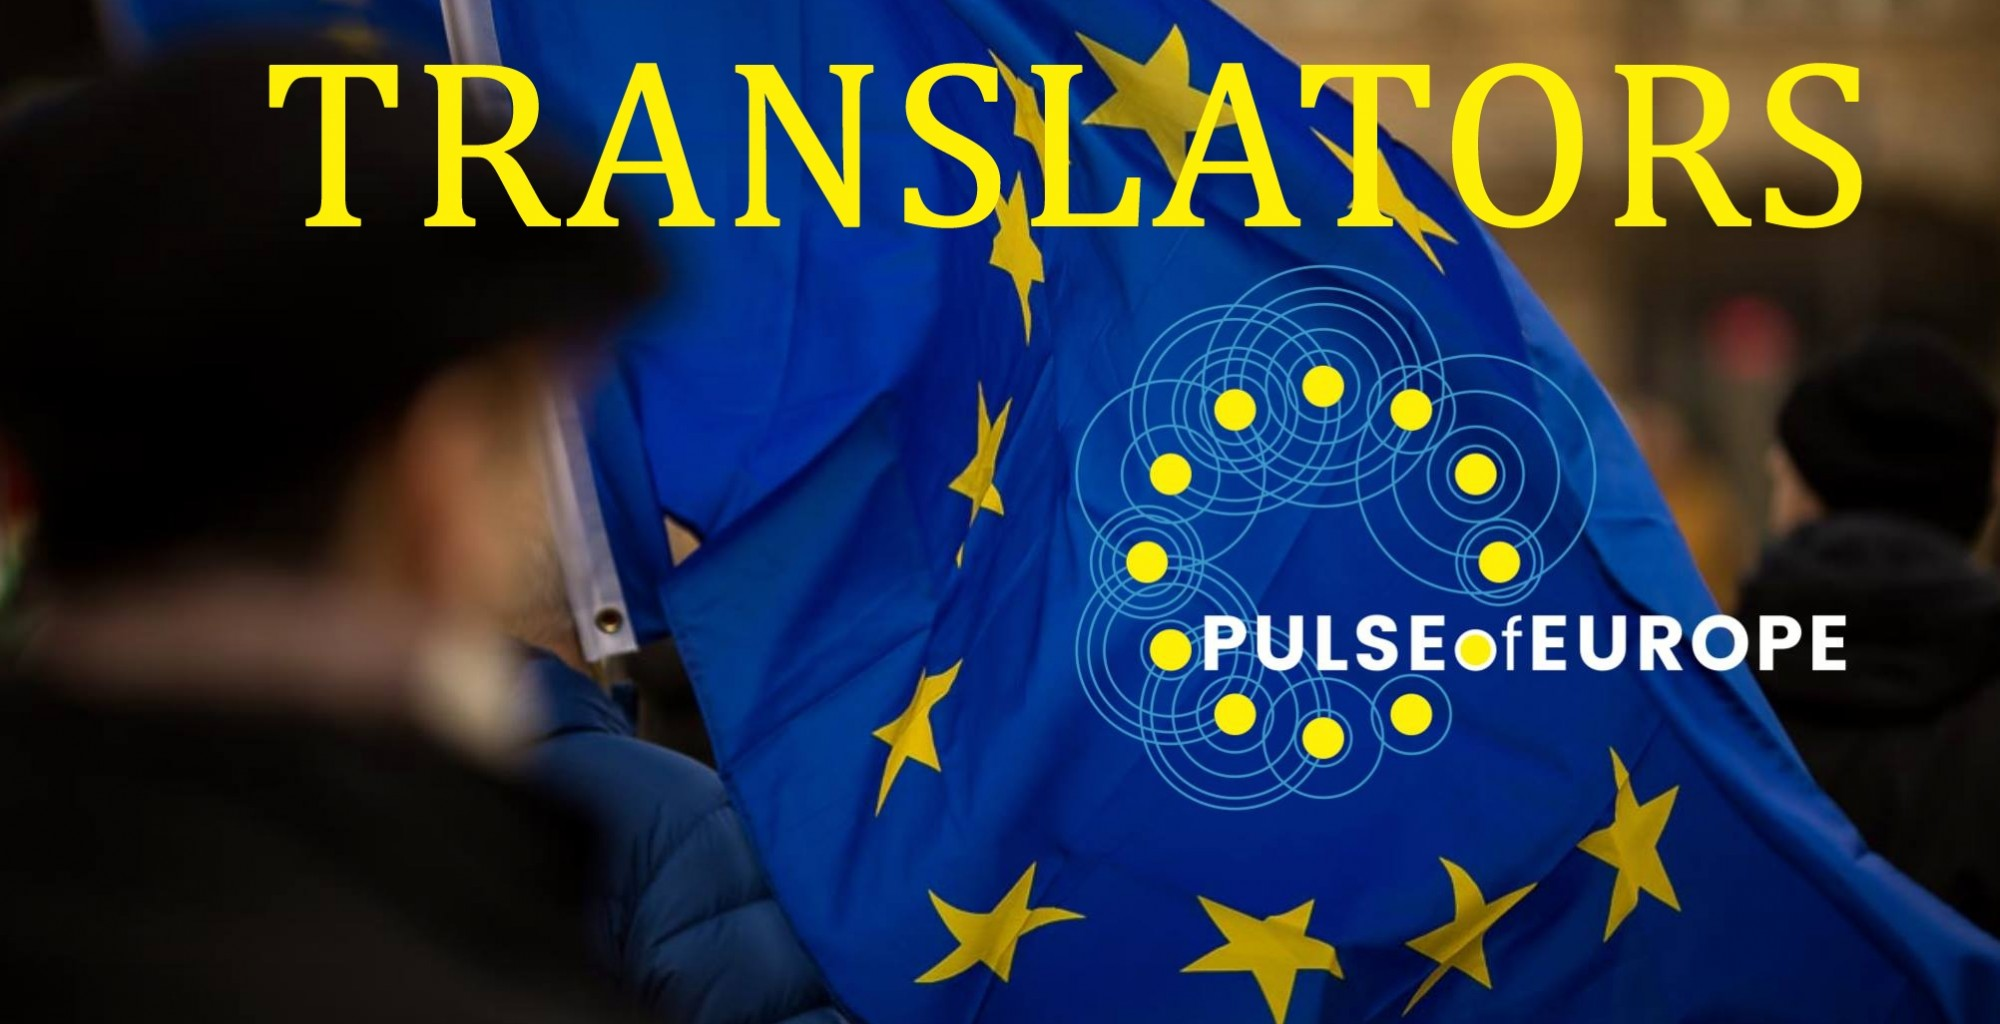 Pulse of Europe Translators